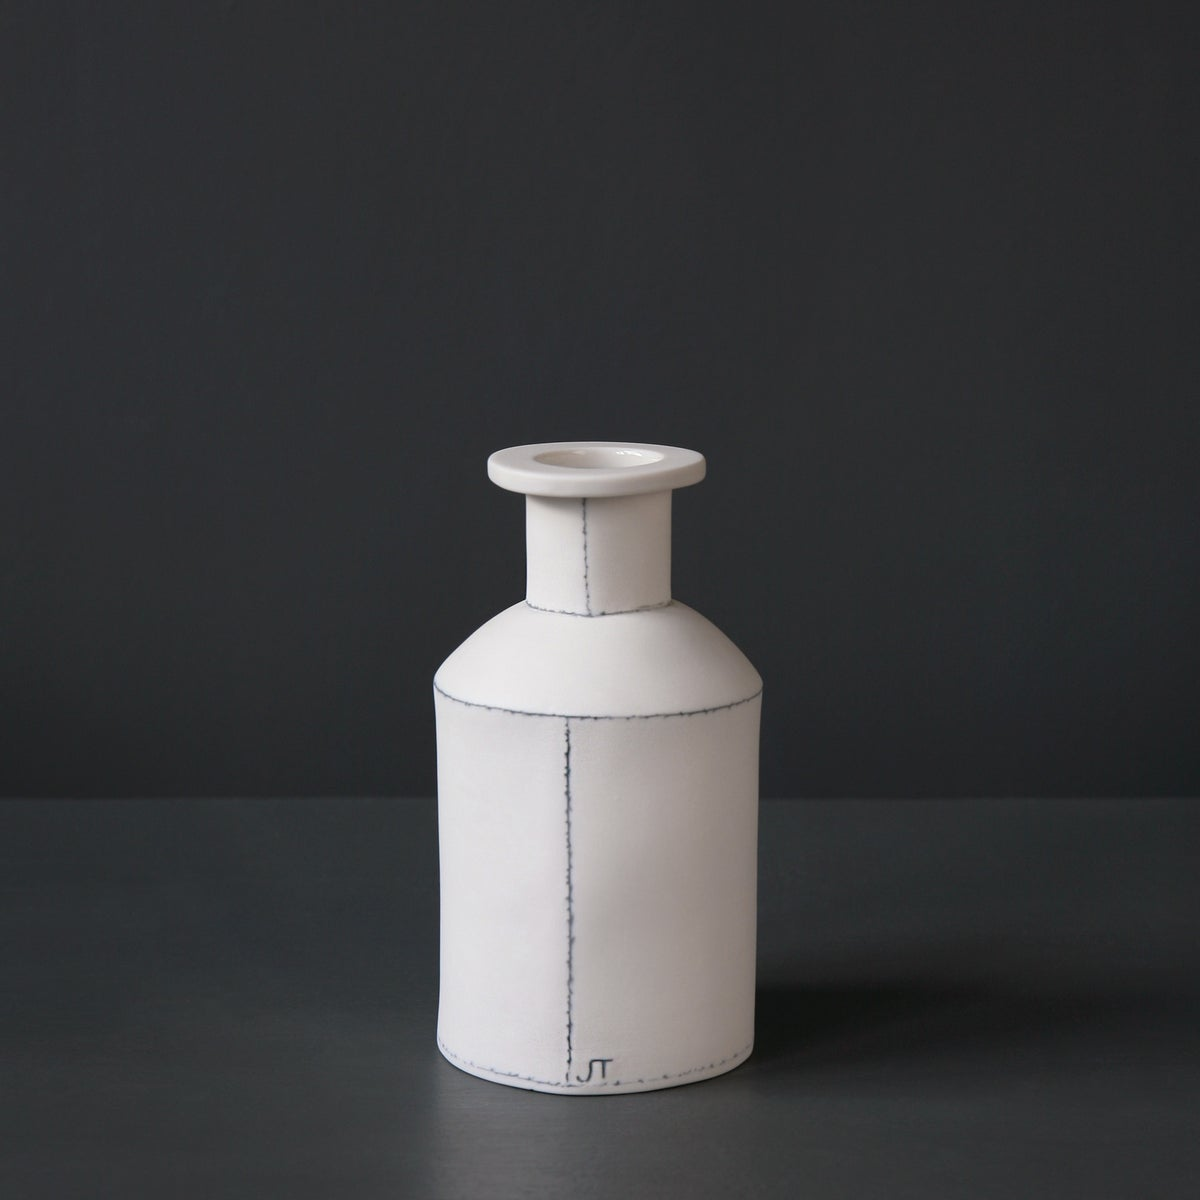 Image of Medium 'Apothecary' Bottle by Jessica Thorn.